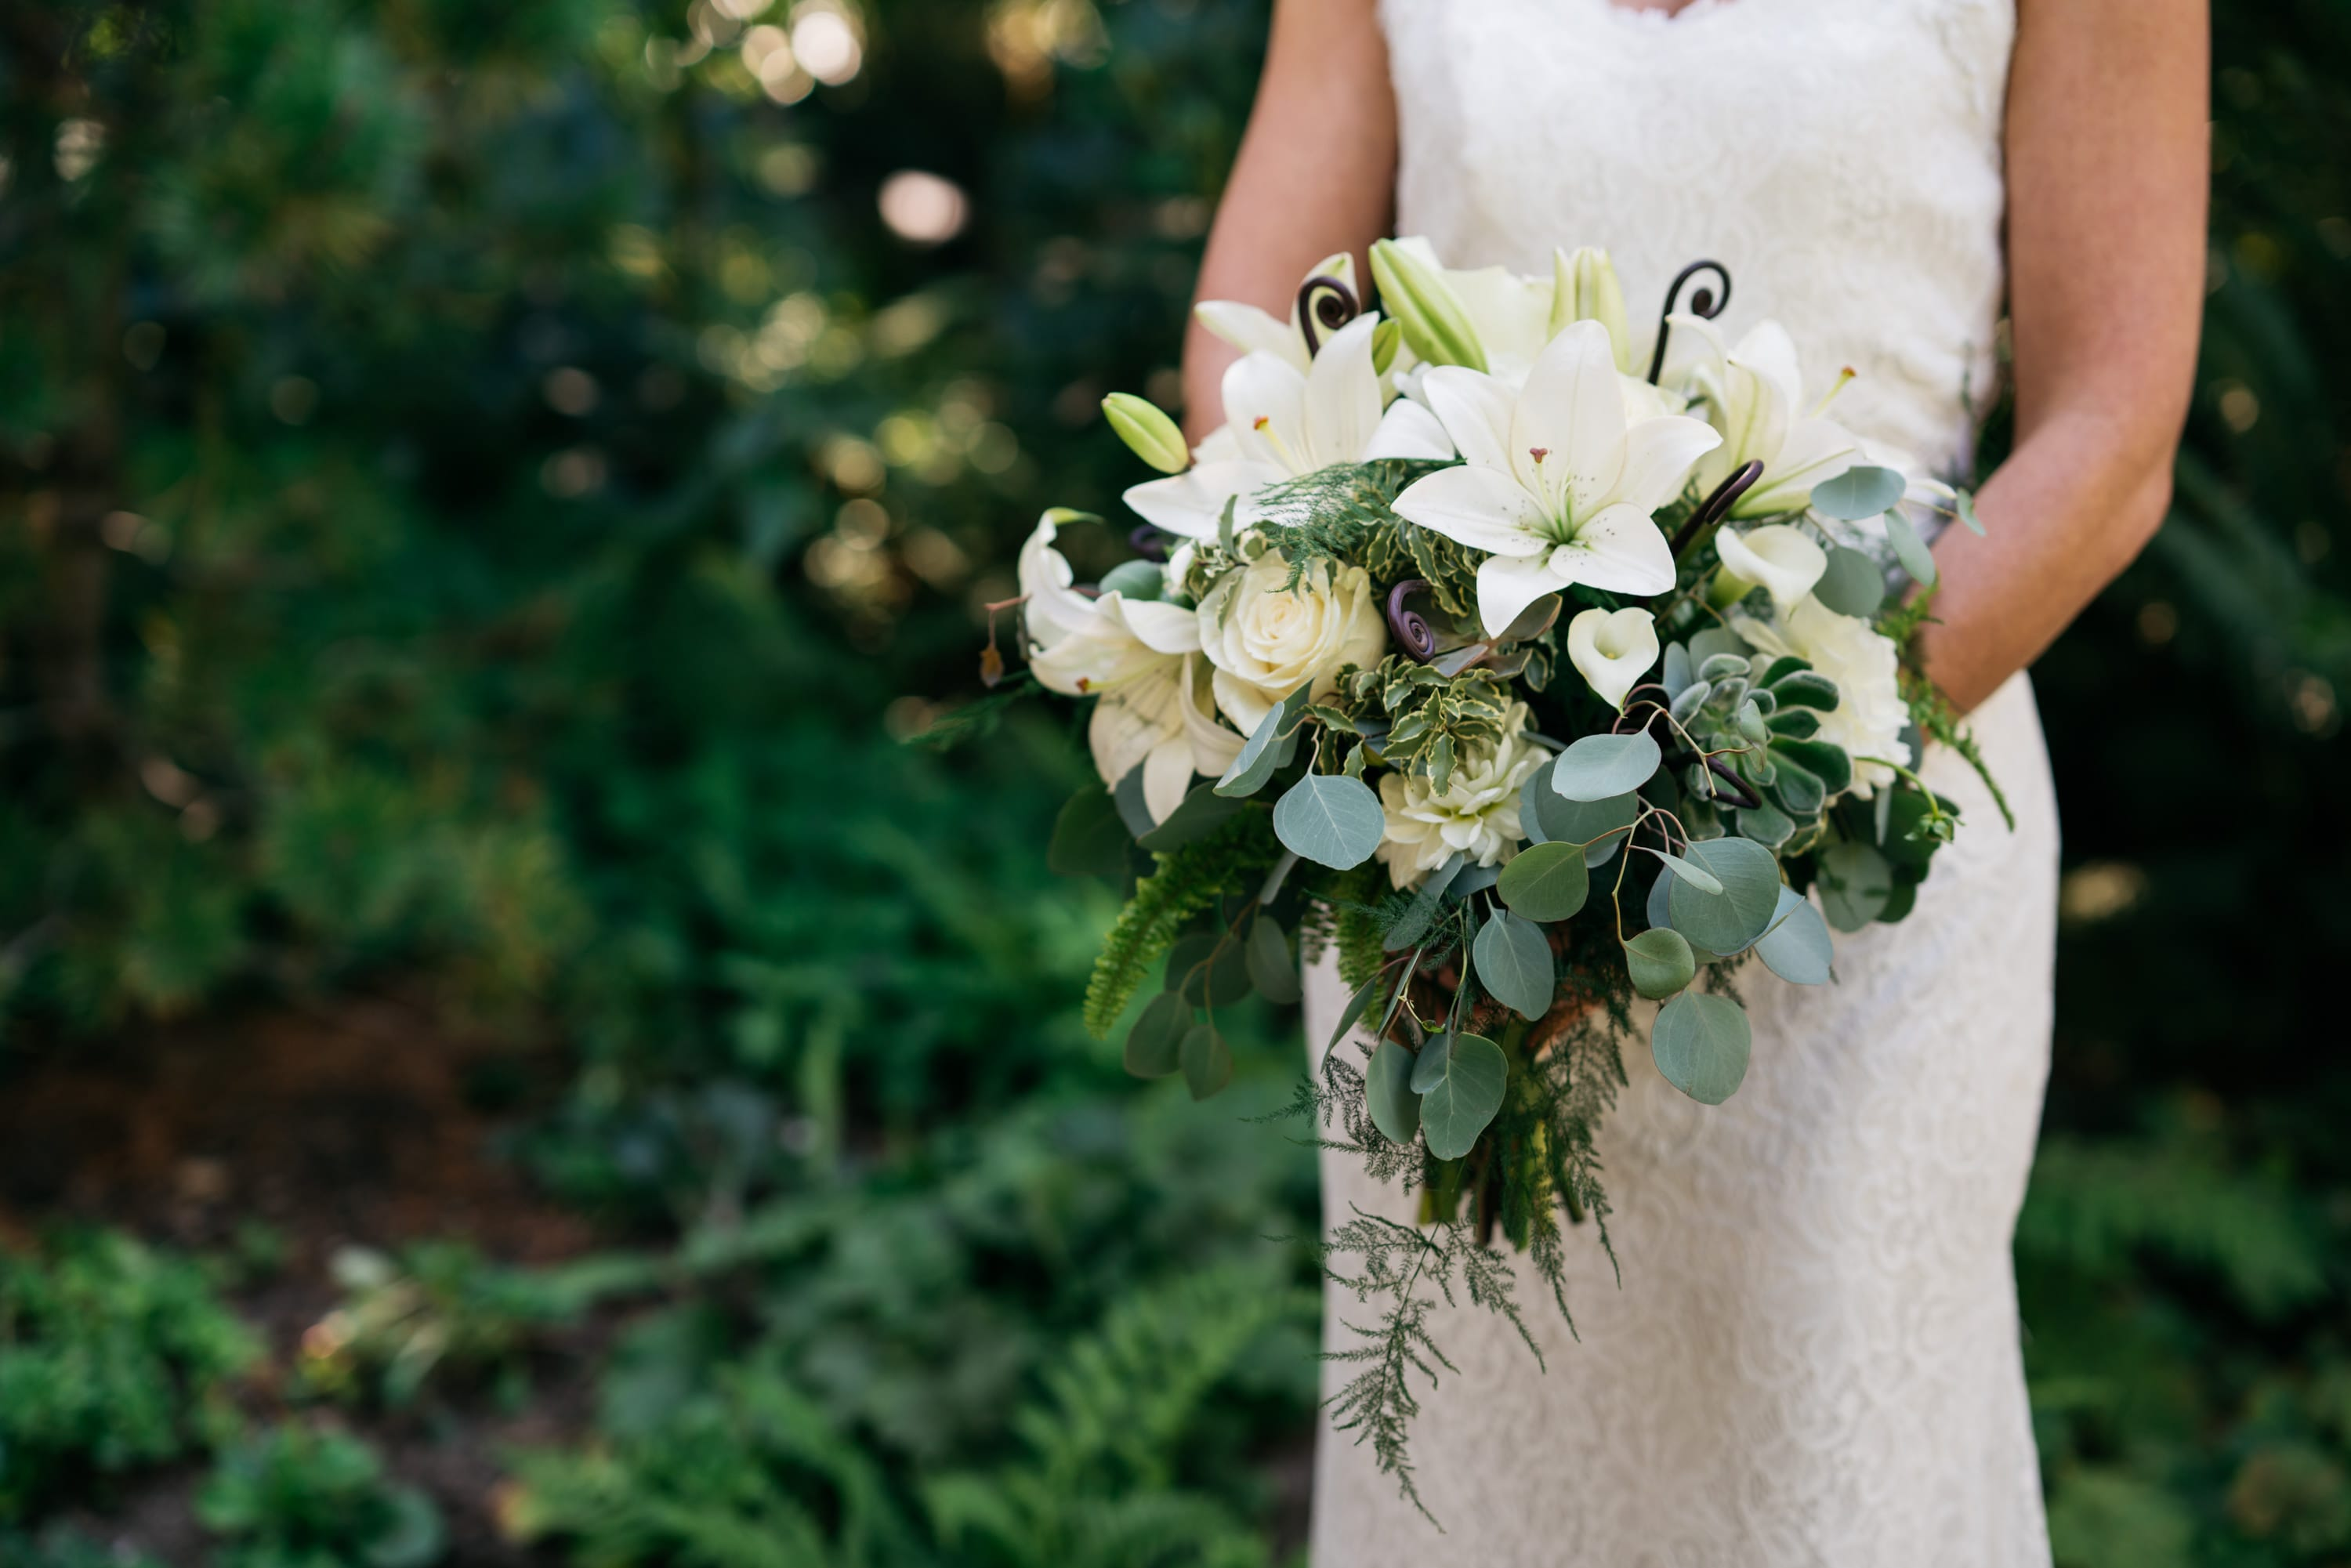 Colorful wedding flowers in bellevue bellevue crossroads florist use white roses for a winter wedding or calla lilies at any time of year white daisies are sweet in springtime while white chrysanthemums and orchids can izmirmasajfo